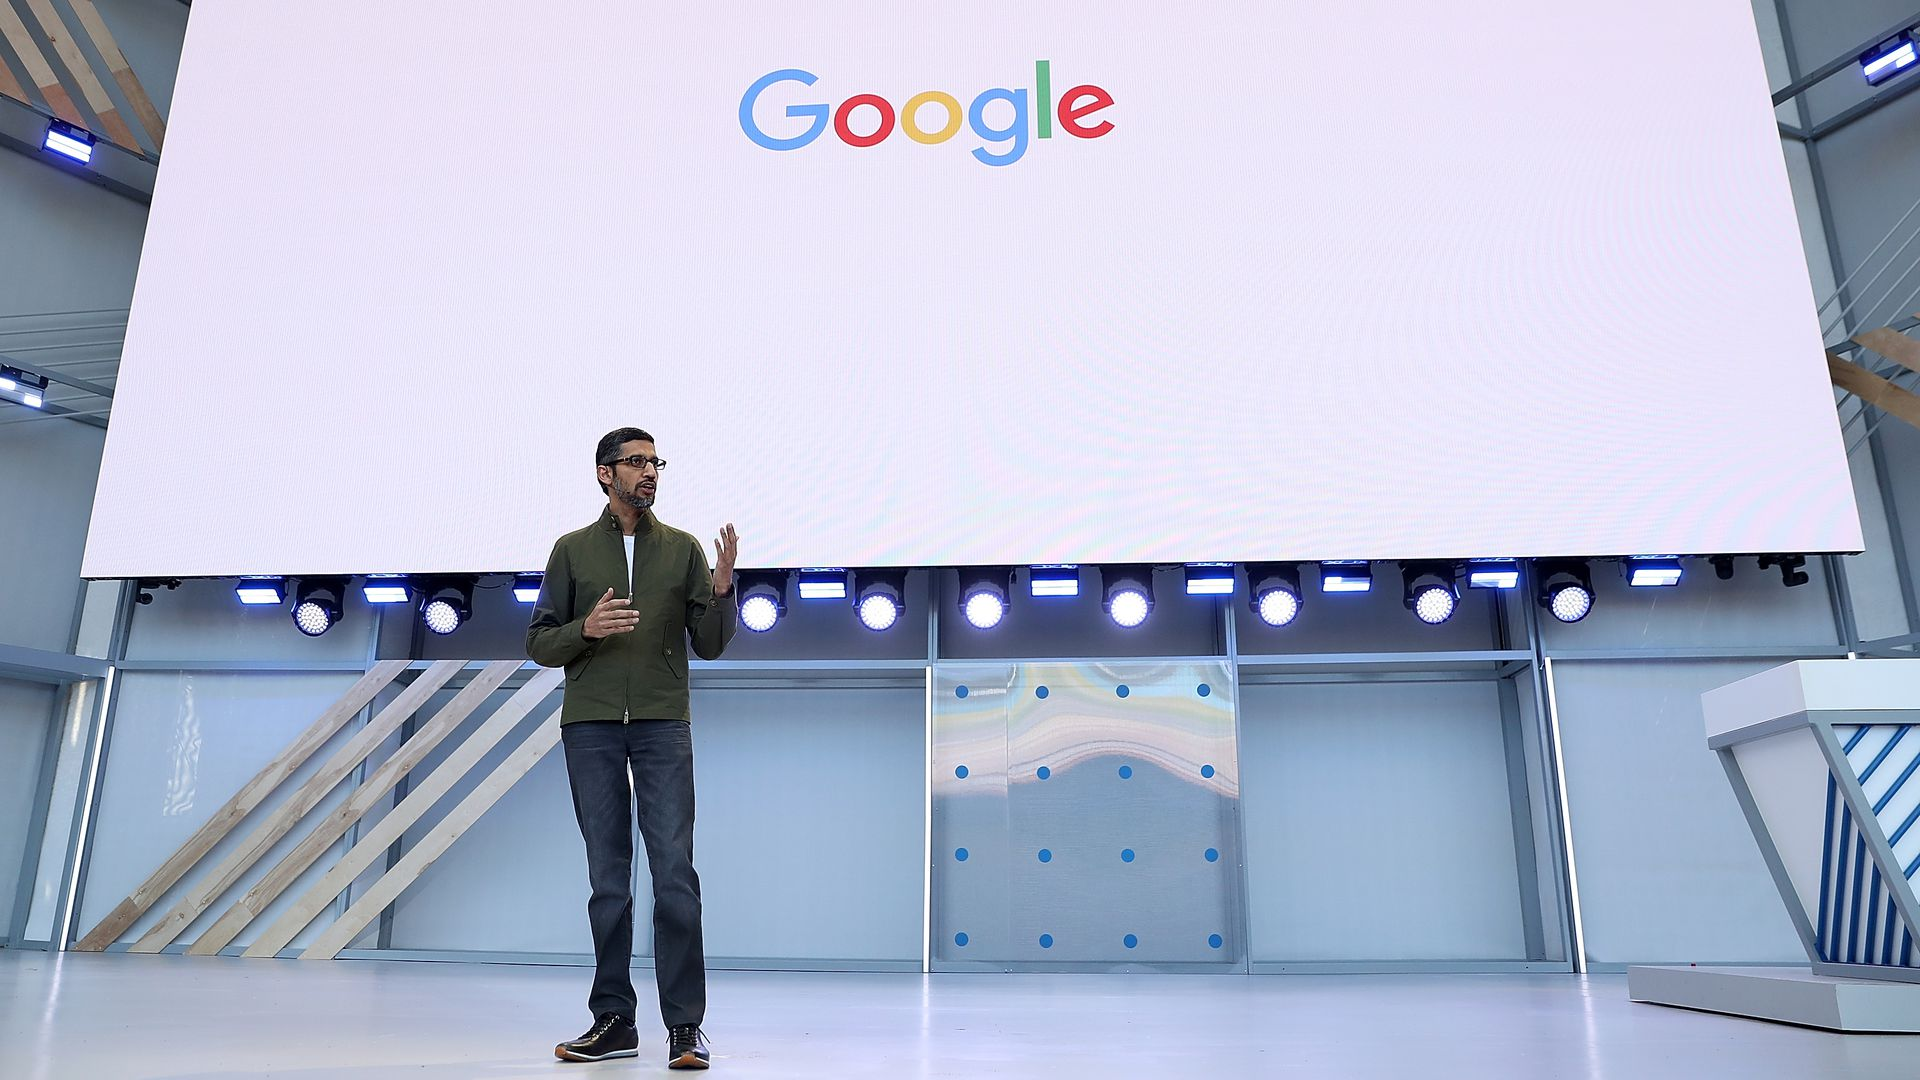 Google logo on a white screen above Sundar Pichai talking with hands up